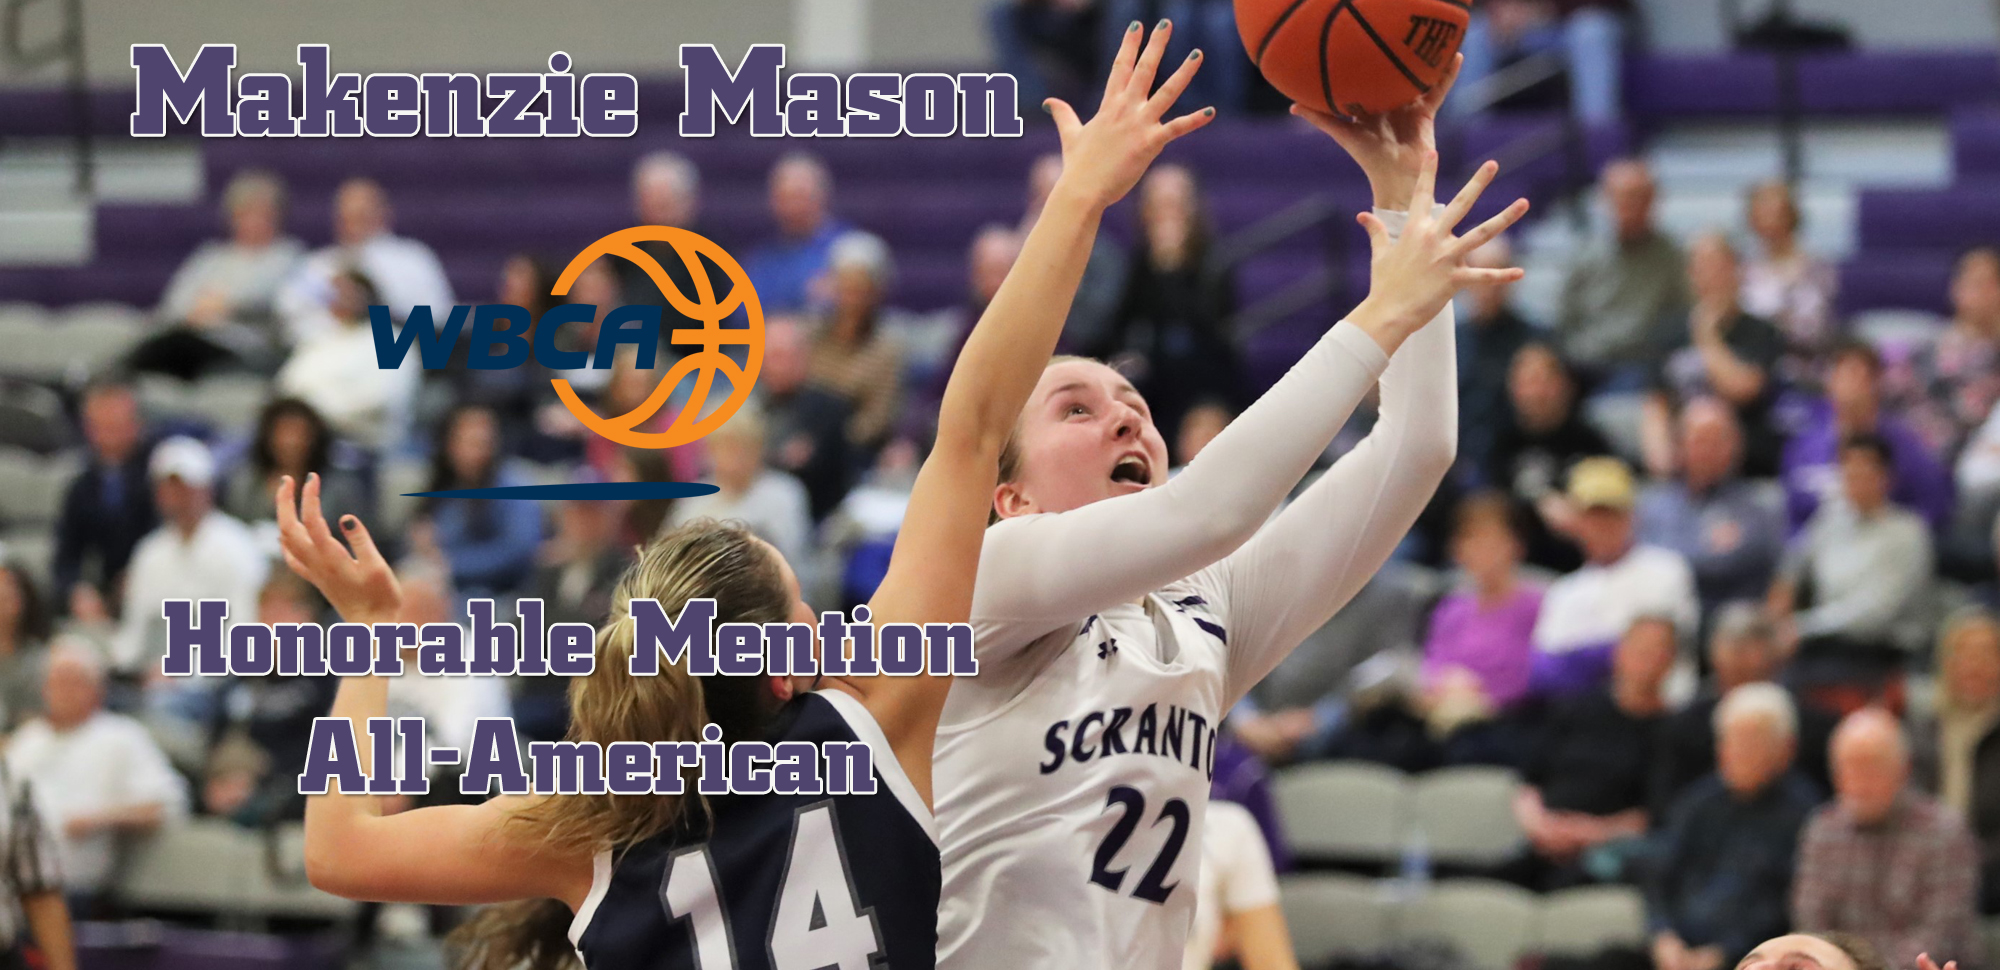 Senior Makenzie Mason was named a WBCA Honorable Mention All-American as announced by the organization on Thursday.